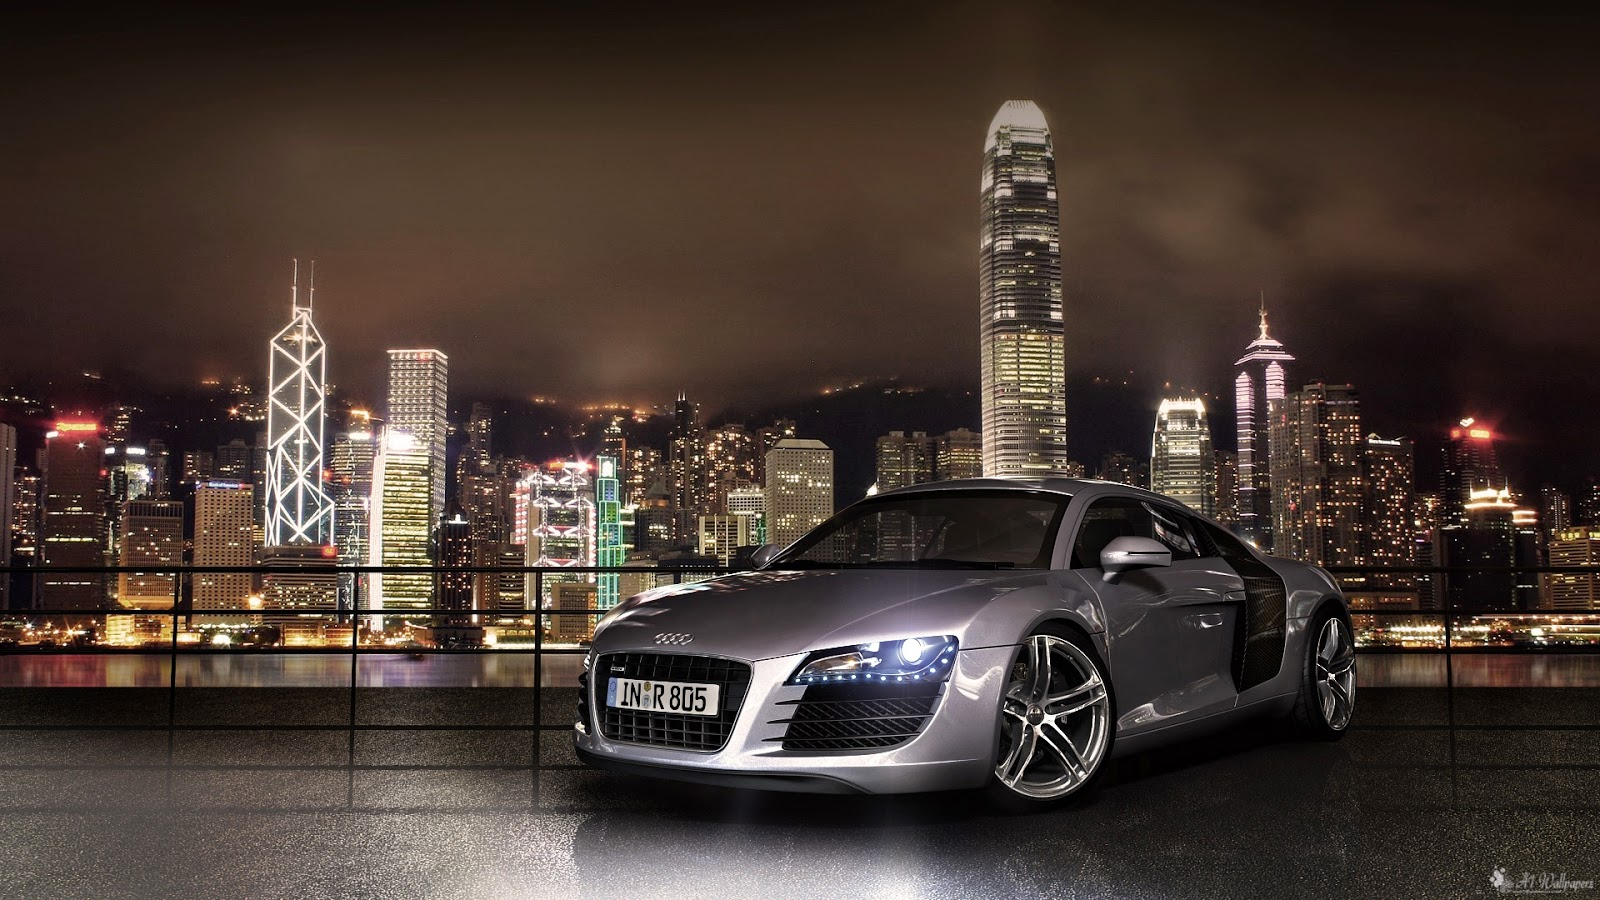 20 Fantastic CARS Wallpapers HD For Desktop Computer Android